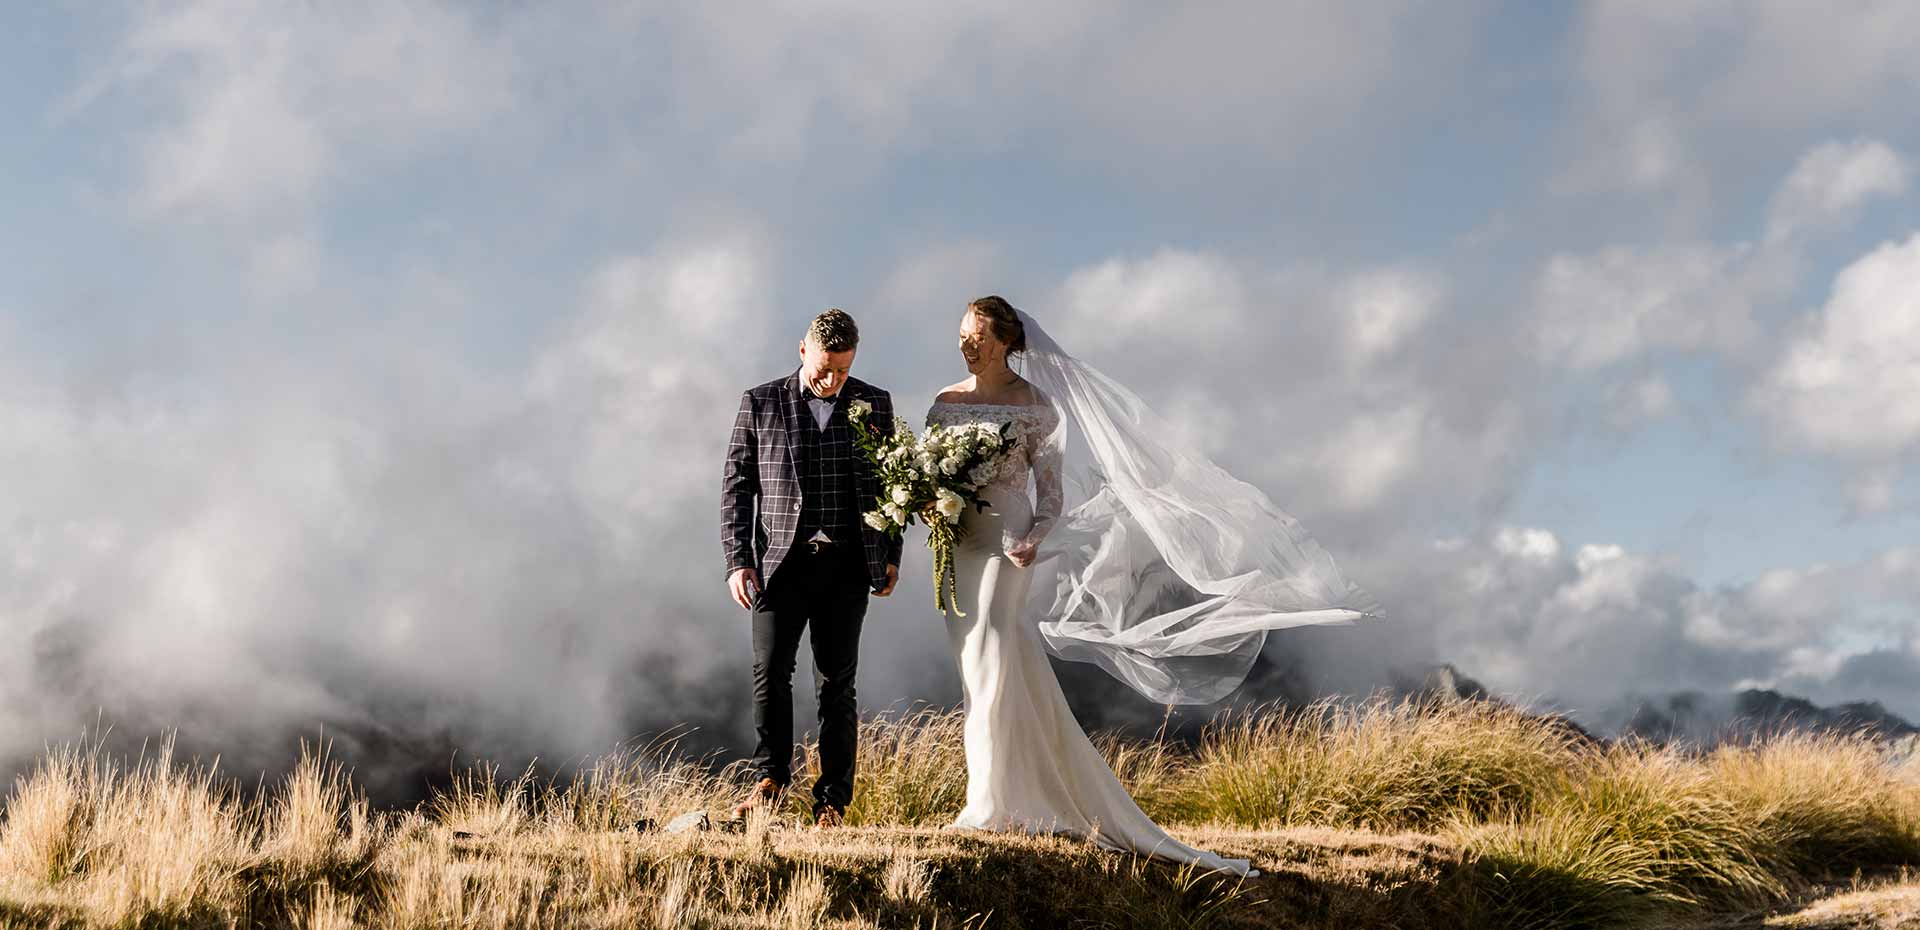 Alpine Heli elopement packages